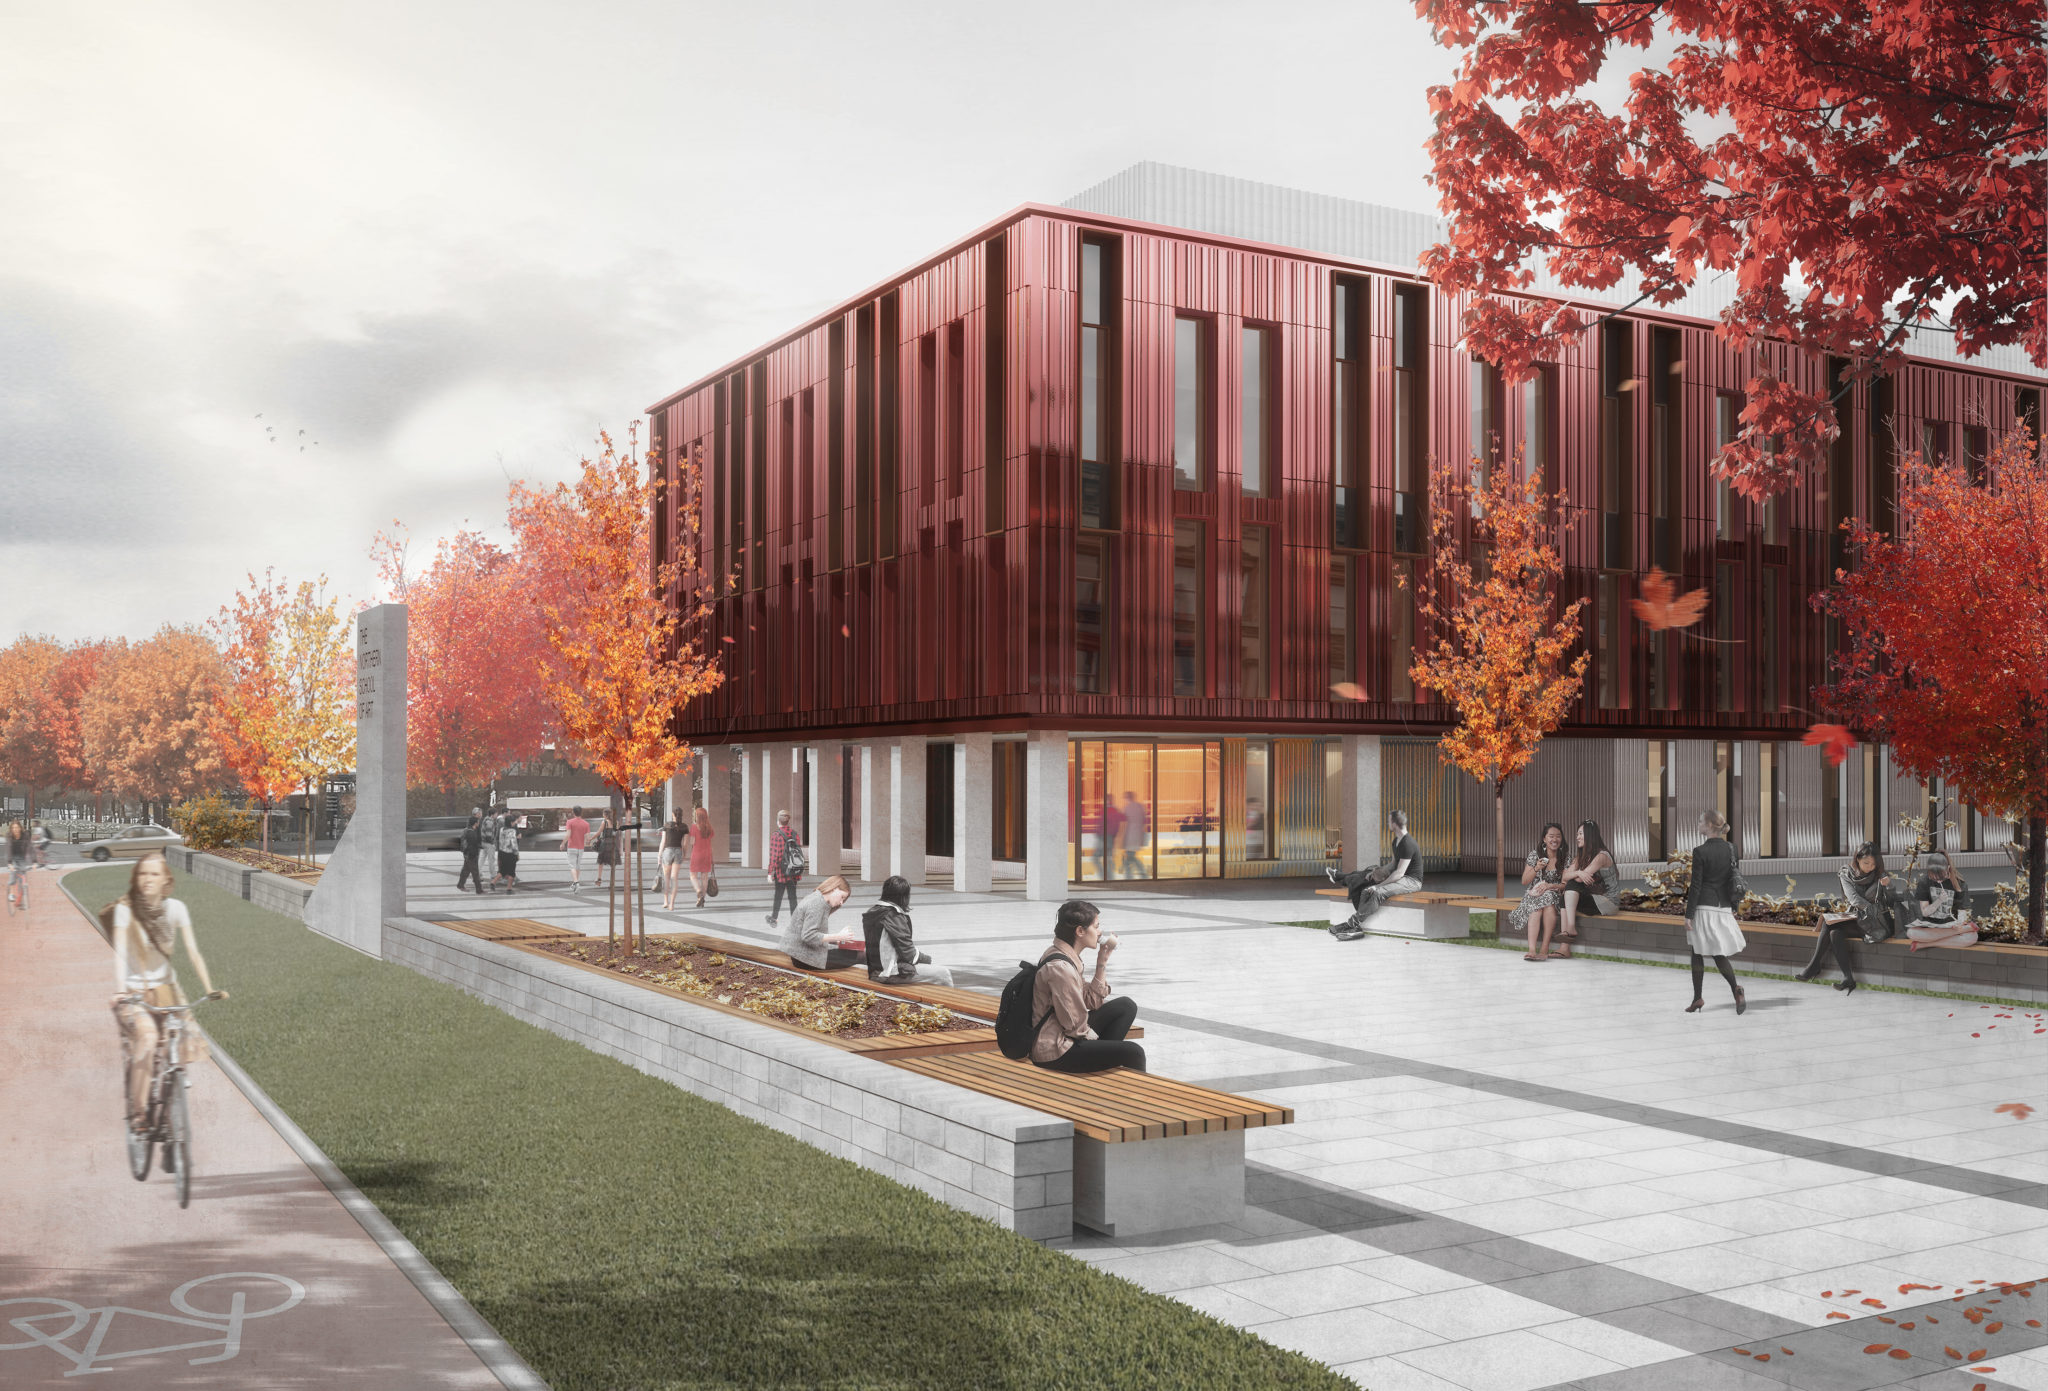 Funds approved for The Northern School of Art's new £14.5m gateway building